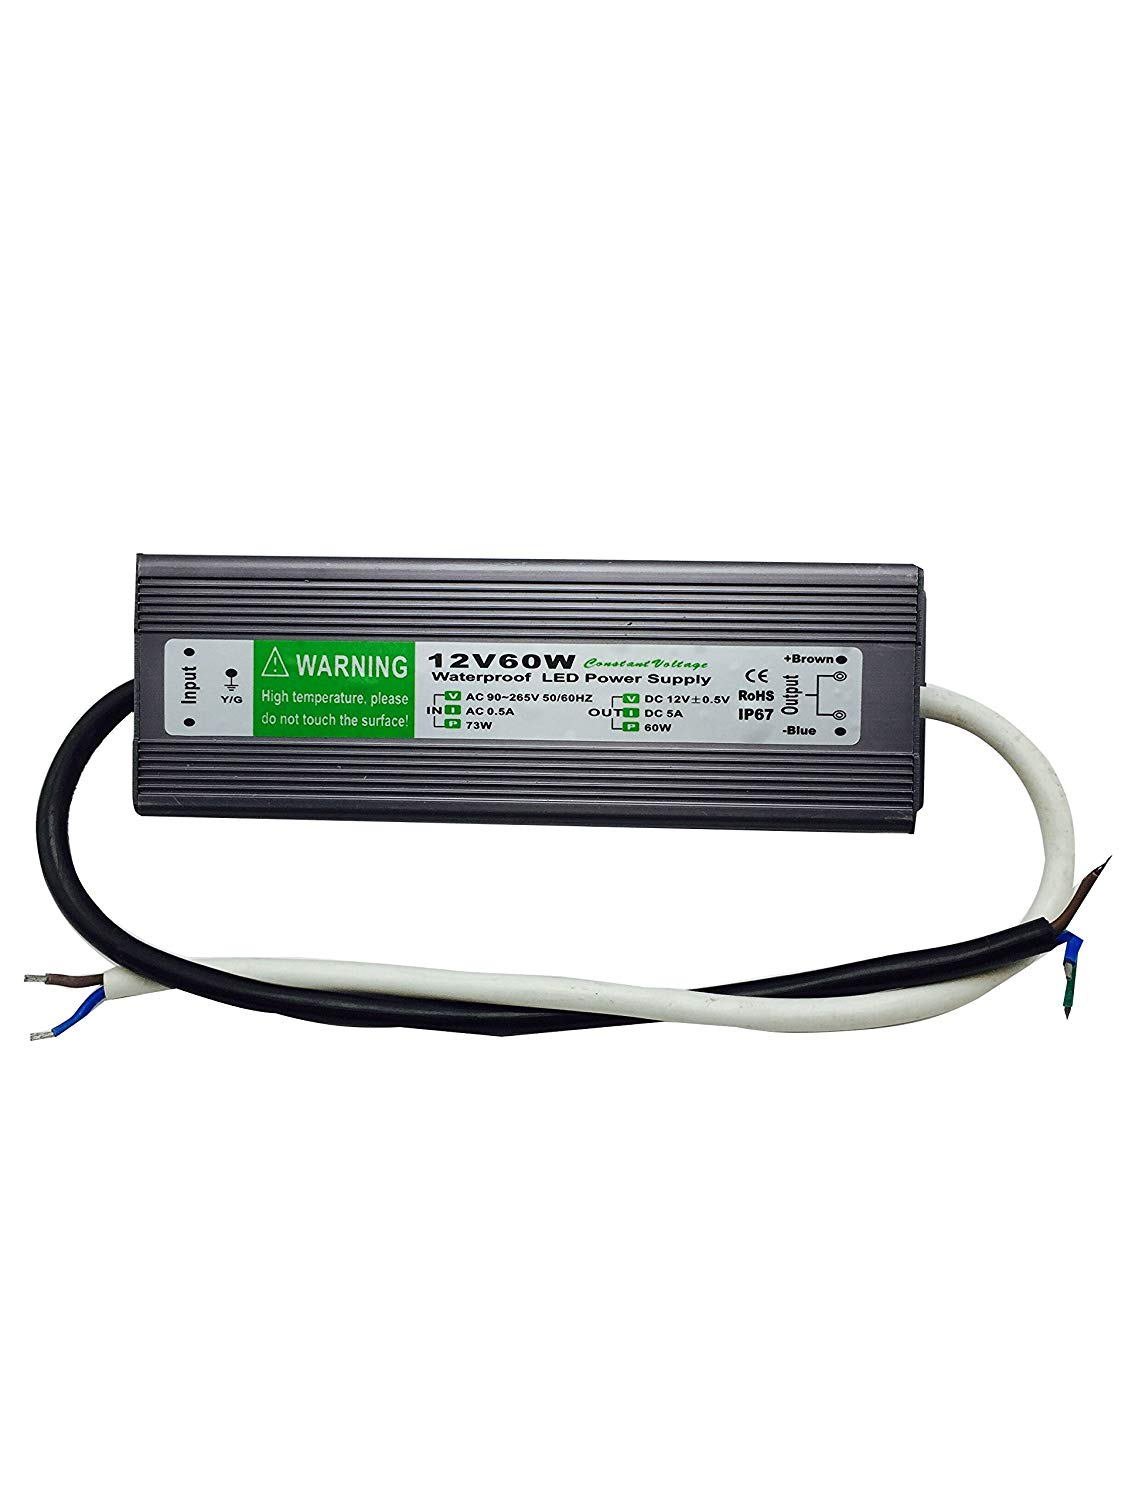 12V IP67 Waterproof LED Power Supply Aluminum Alloy Transformer AC110 to 12 Volt DC Output